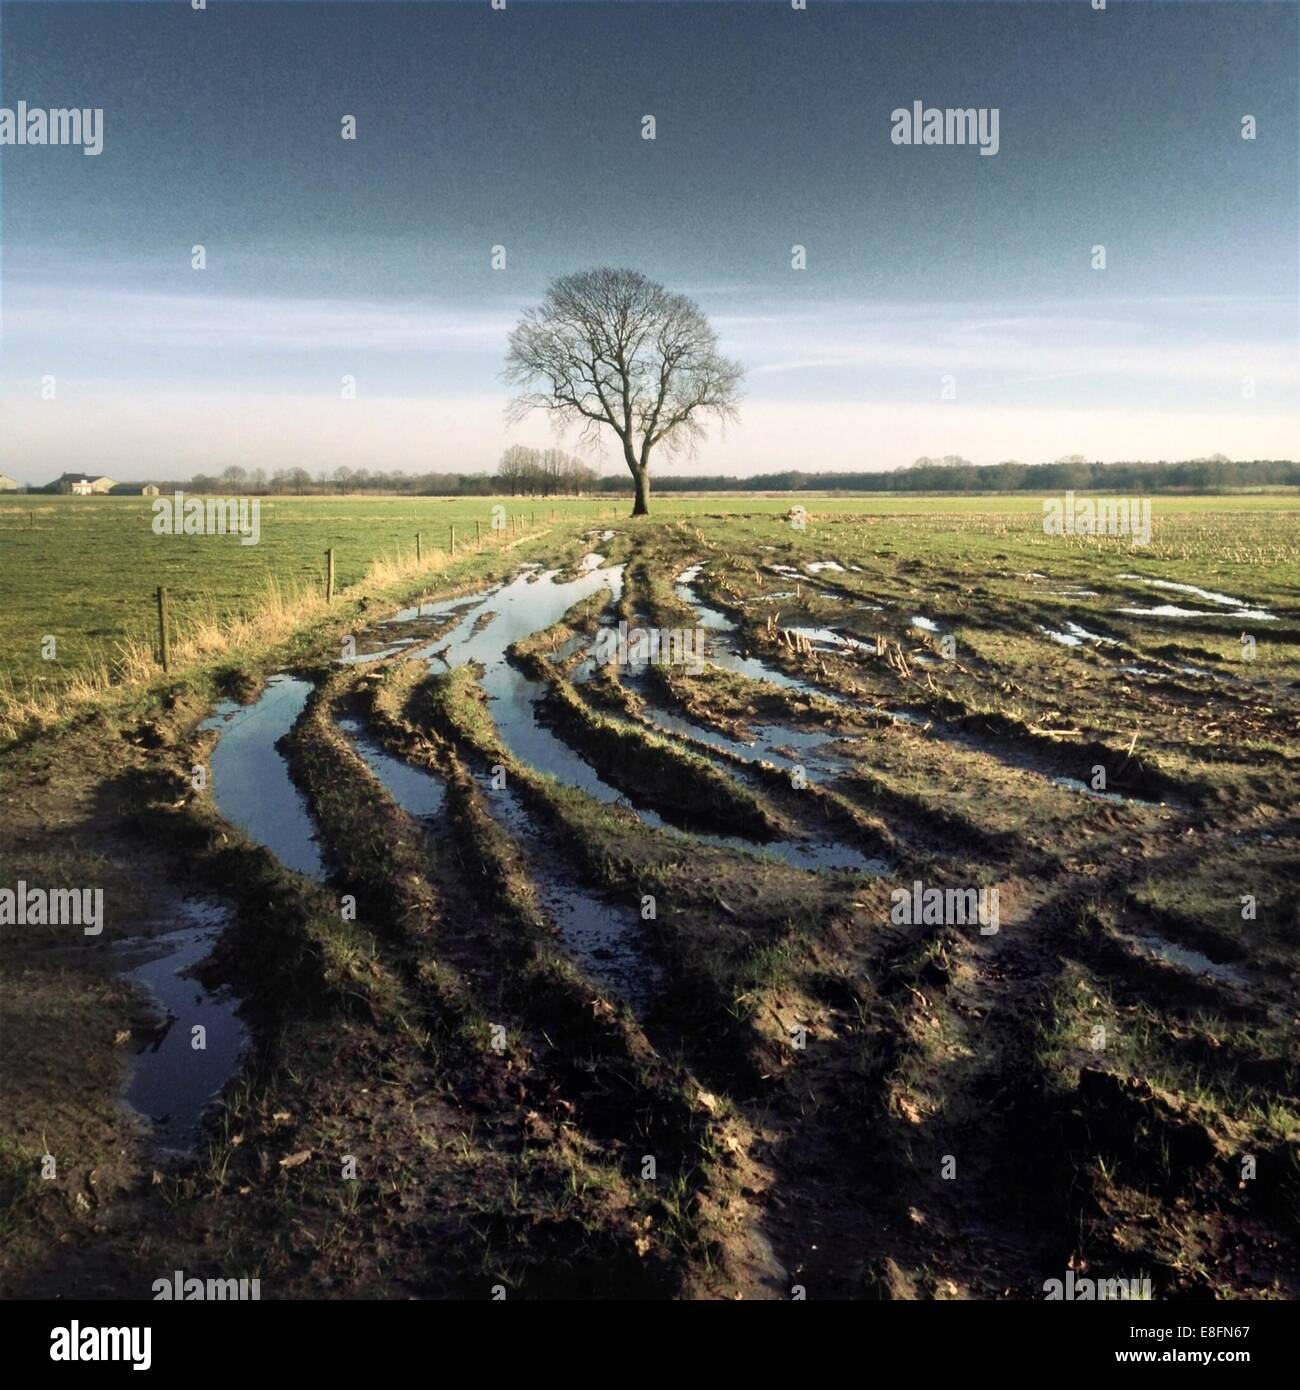 Tire tracks in mud - Stock Image